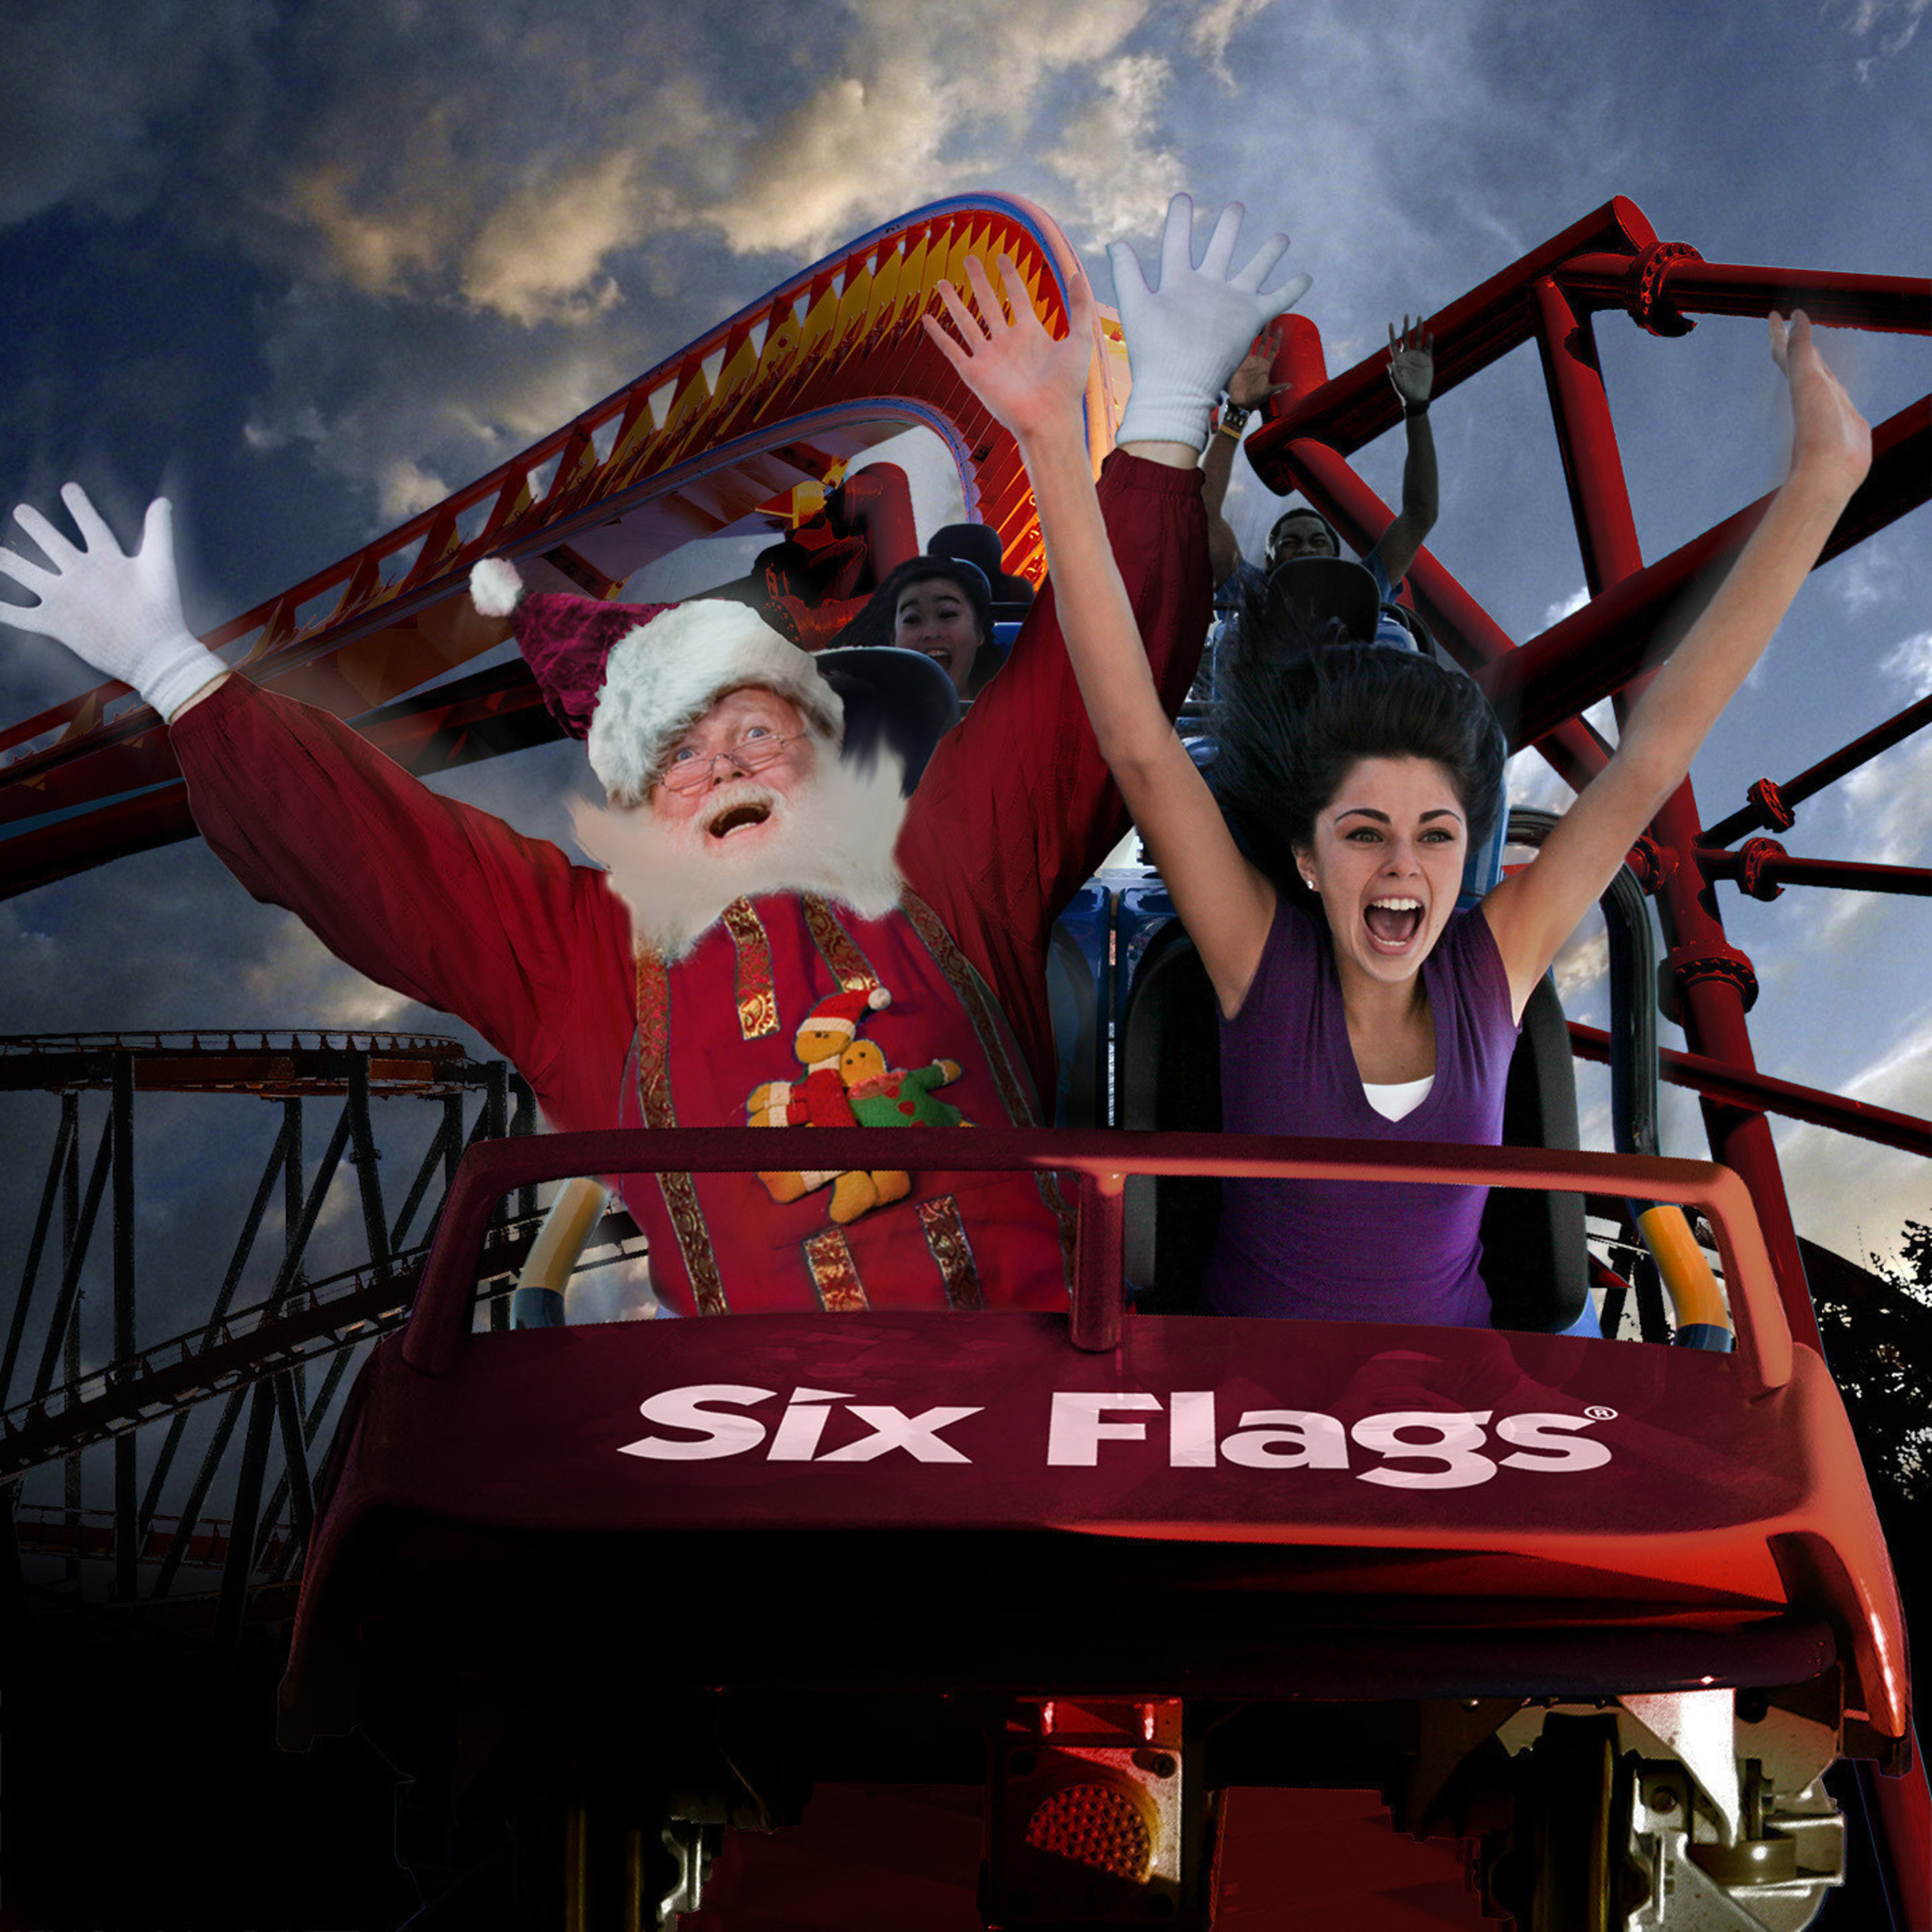 Six Flags Great Adventure will debut Holiday in the Park this winter, featuring millions of glittering lights, dazzling holiday entertainment, delicious seasonal treats, Santa's village, animals and many popular rides. The special seasonal event will run weekends and select days from November 21 through January 3, 2016.